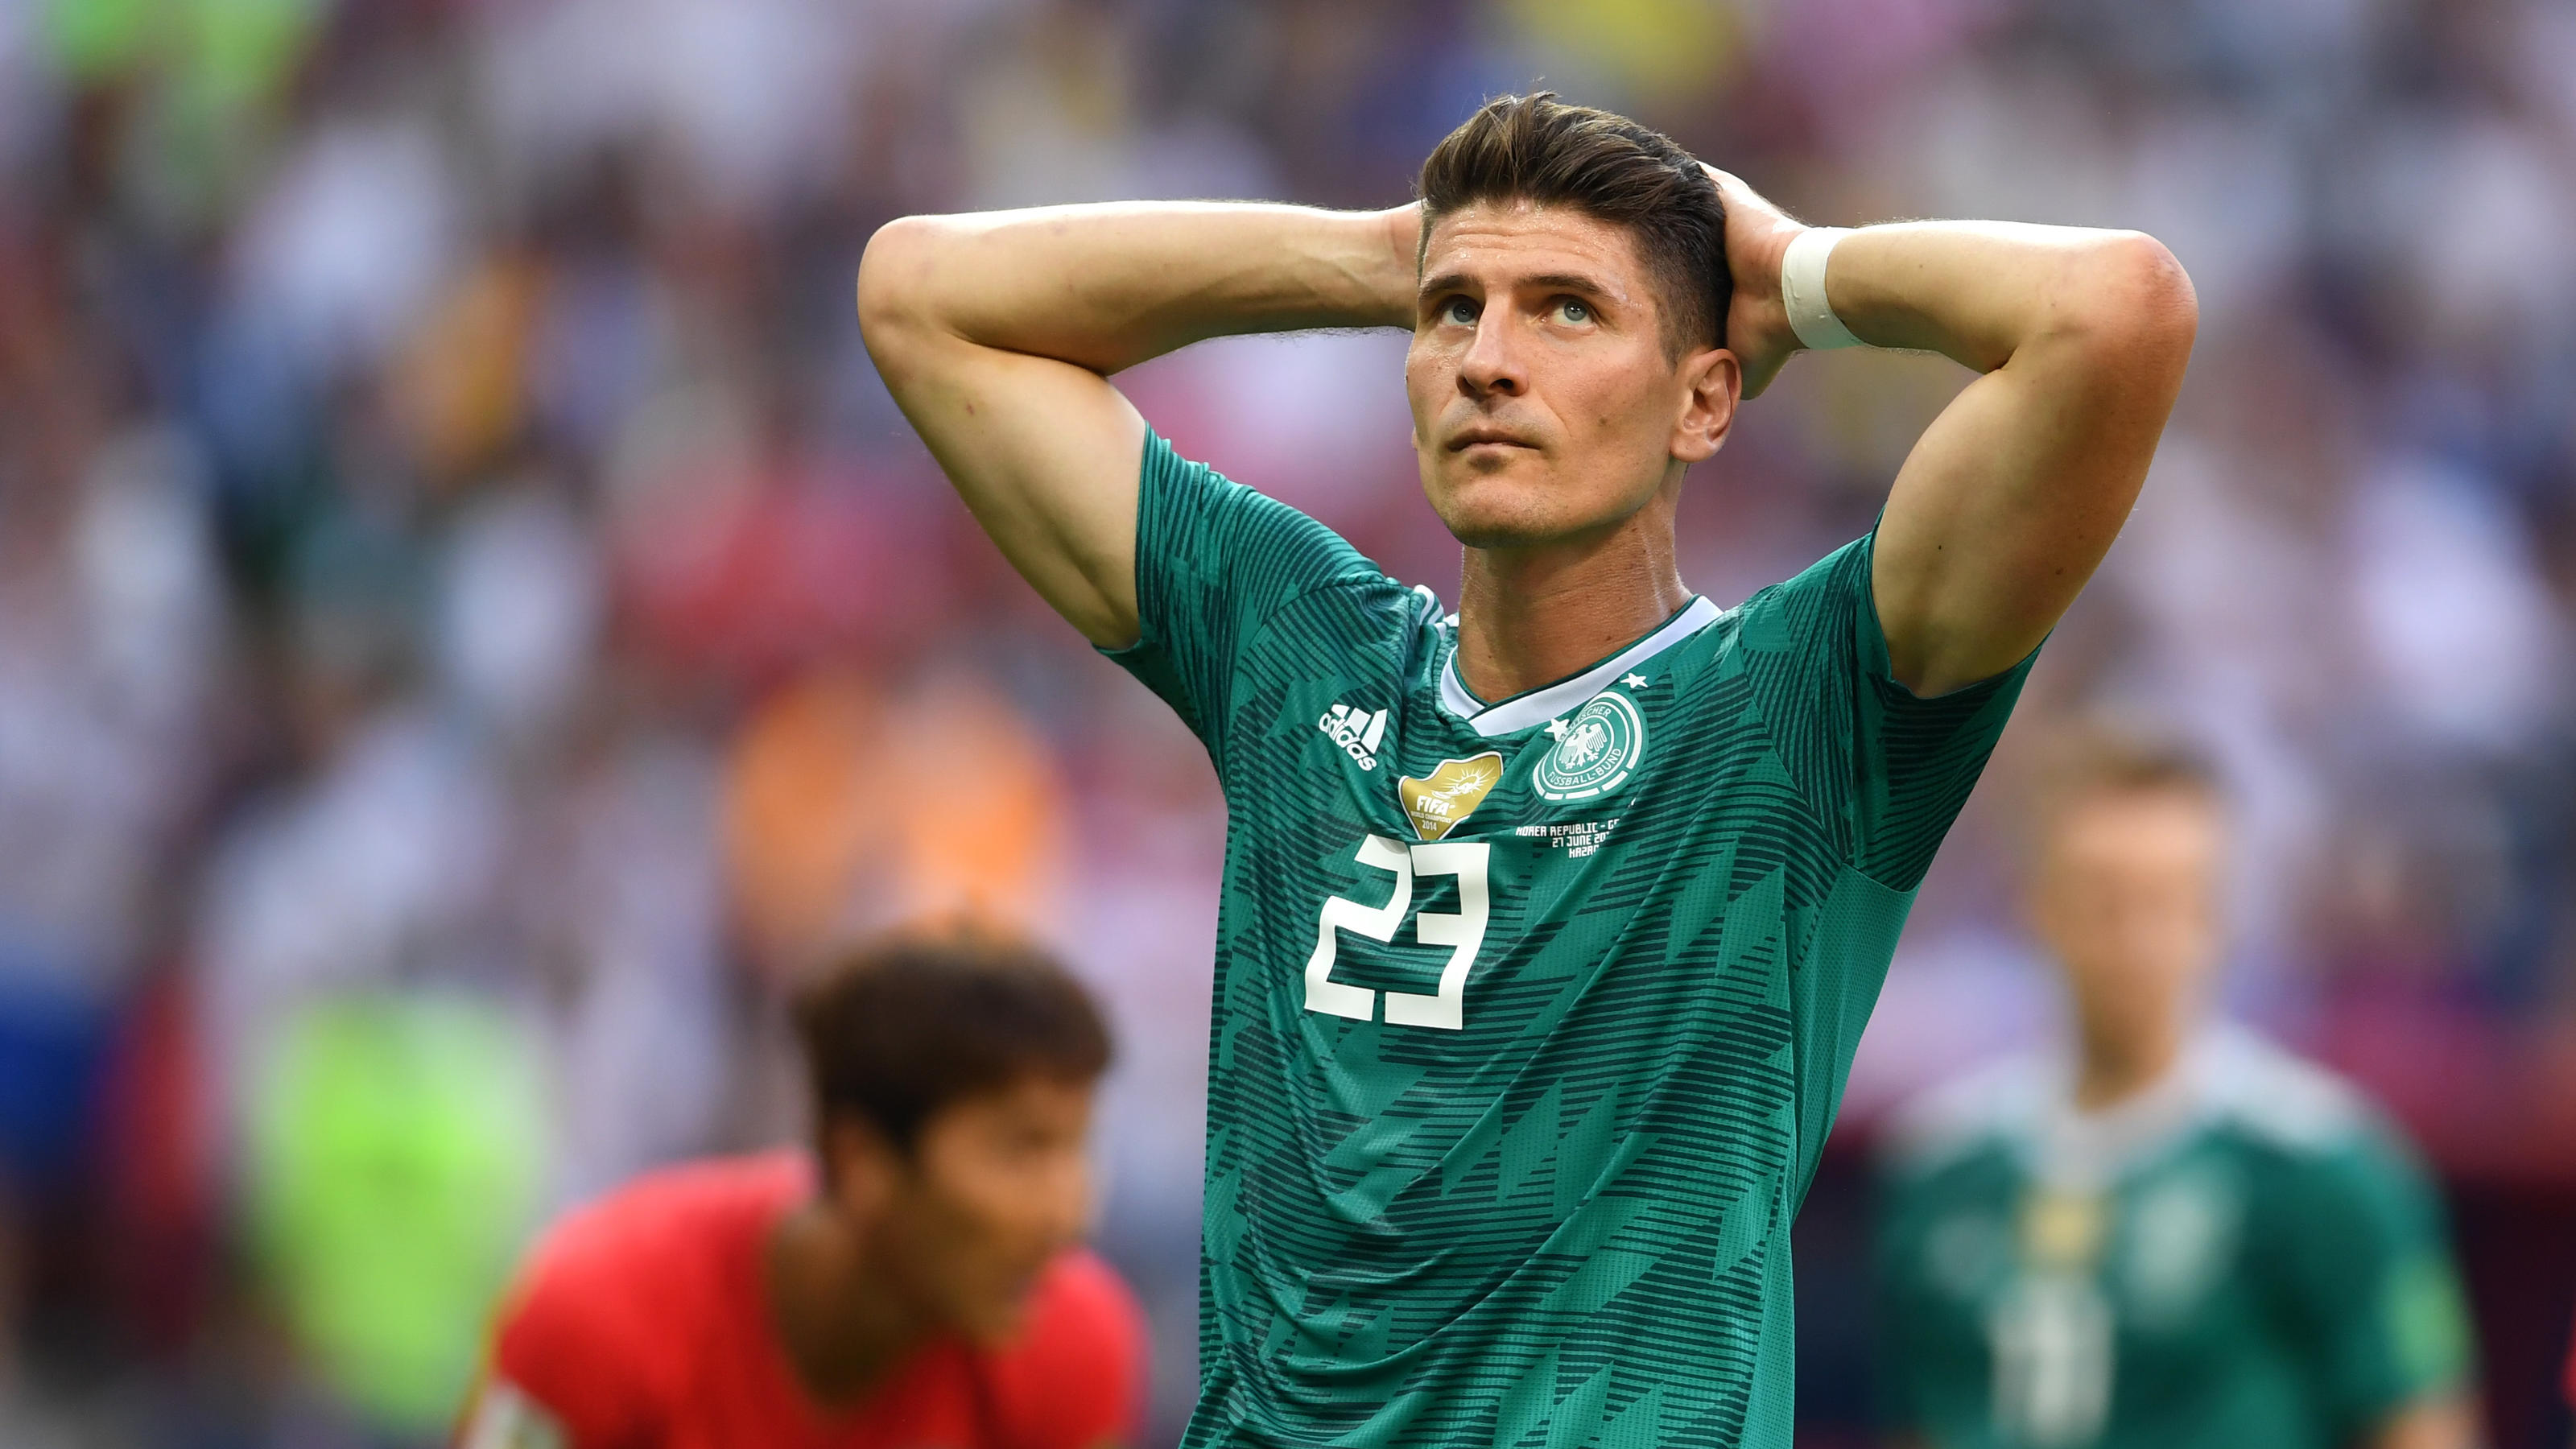 KAZAN, RUSSIA - JUNE 27:  Mario Gomez of Germany looks dejected following the 2018 FIFA World Cup Russia group F match between Korea Republic and Germany at Kazan Arena on June 27, 2018 in Kazan, Russia.  (Photo by Laurence Griffiths/Getty Images)